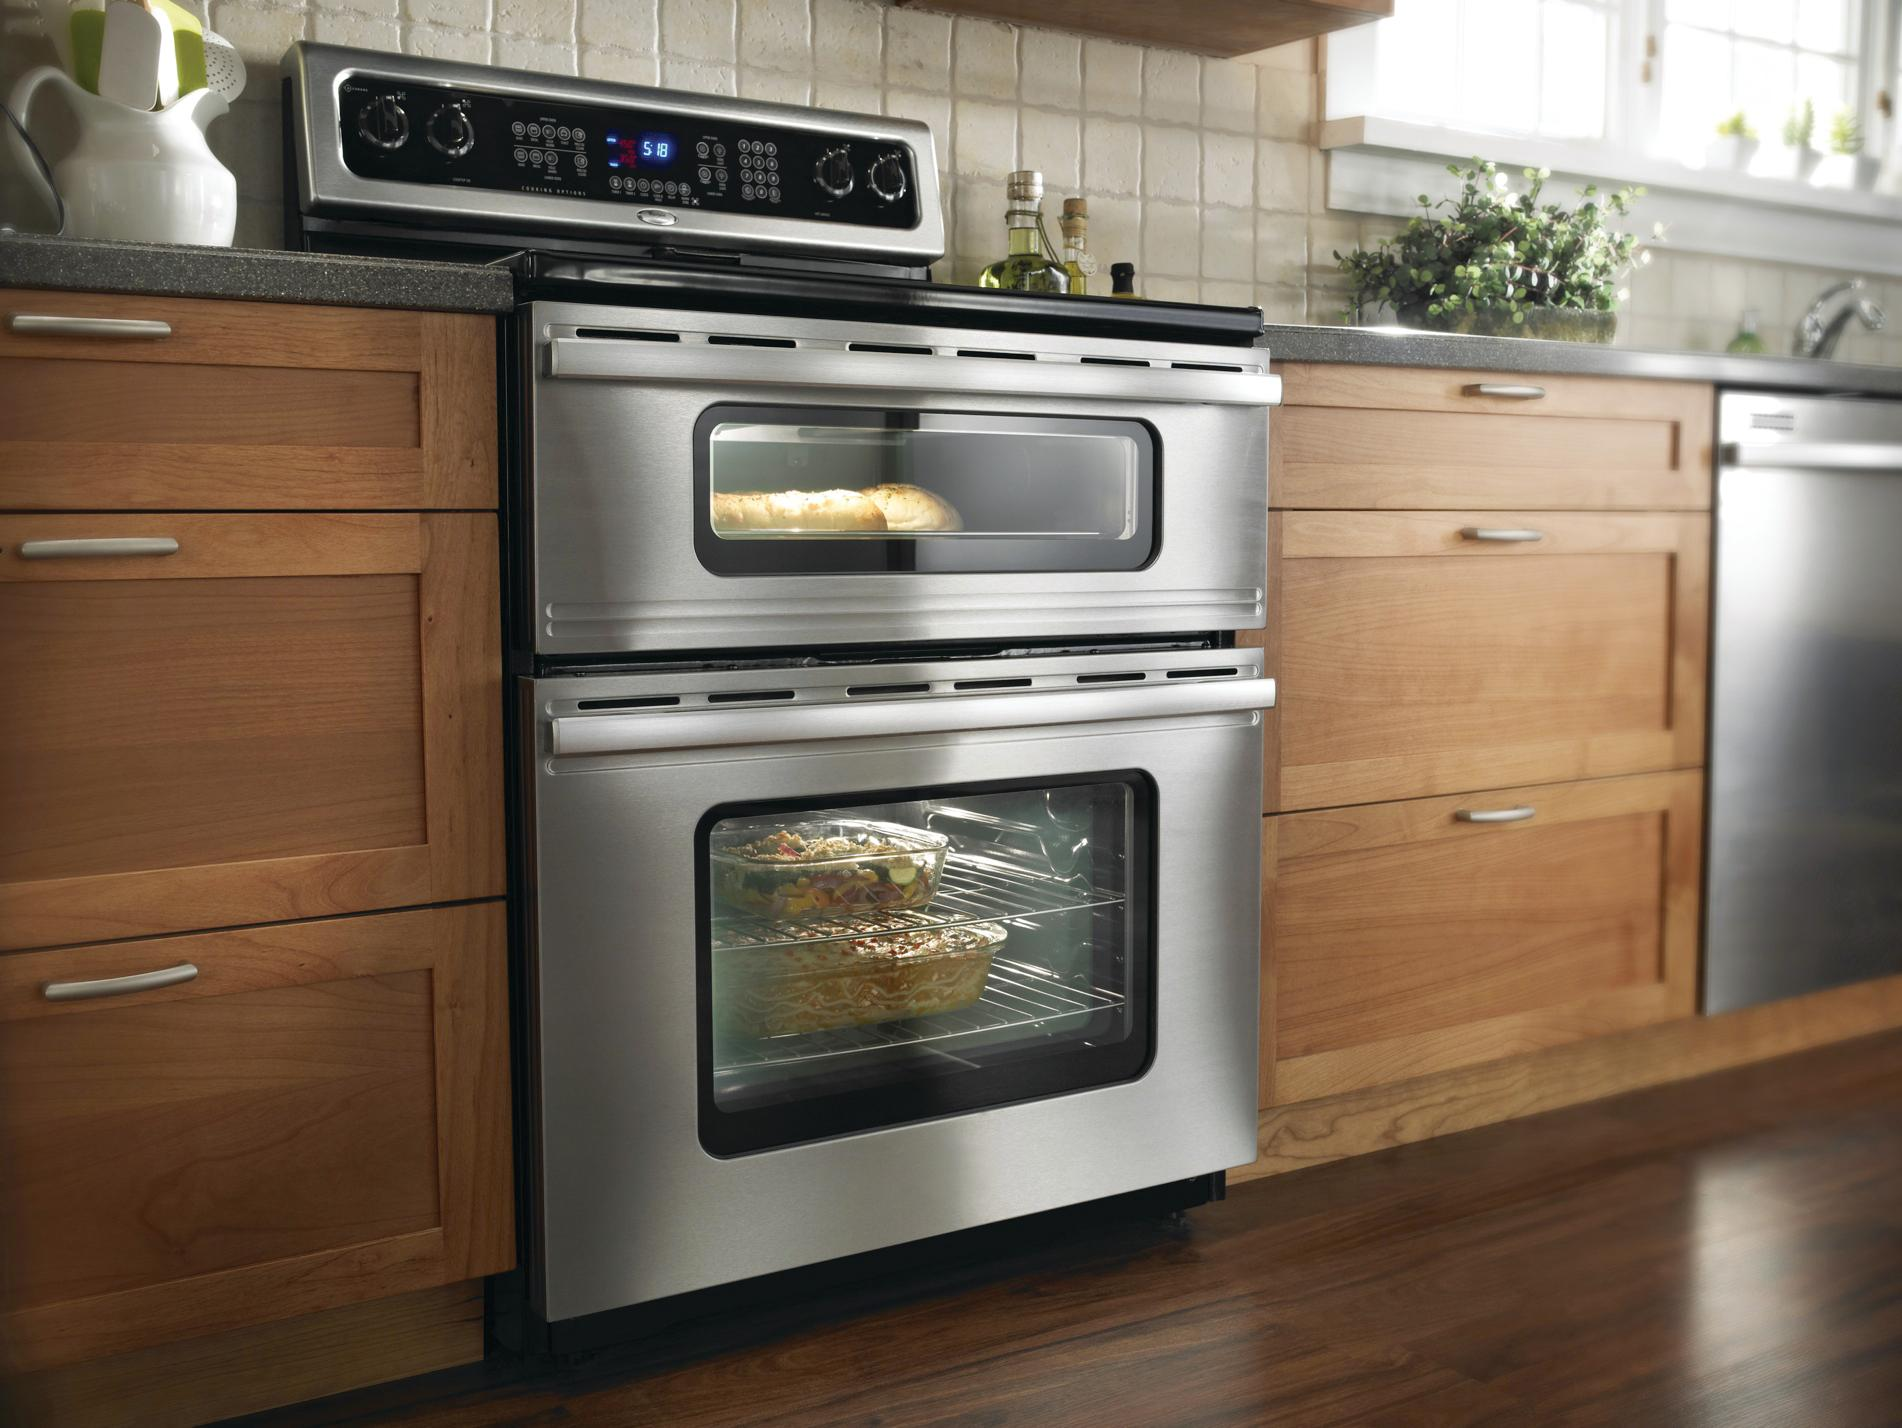 Double Oven Kitchen Cabinet For Sale